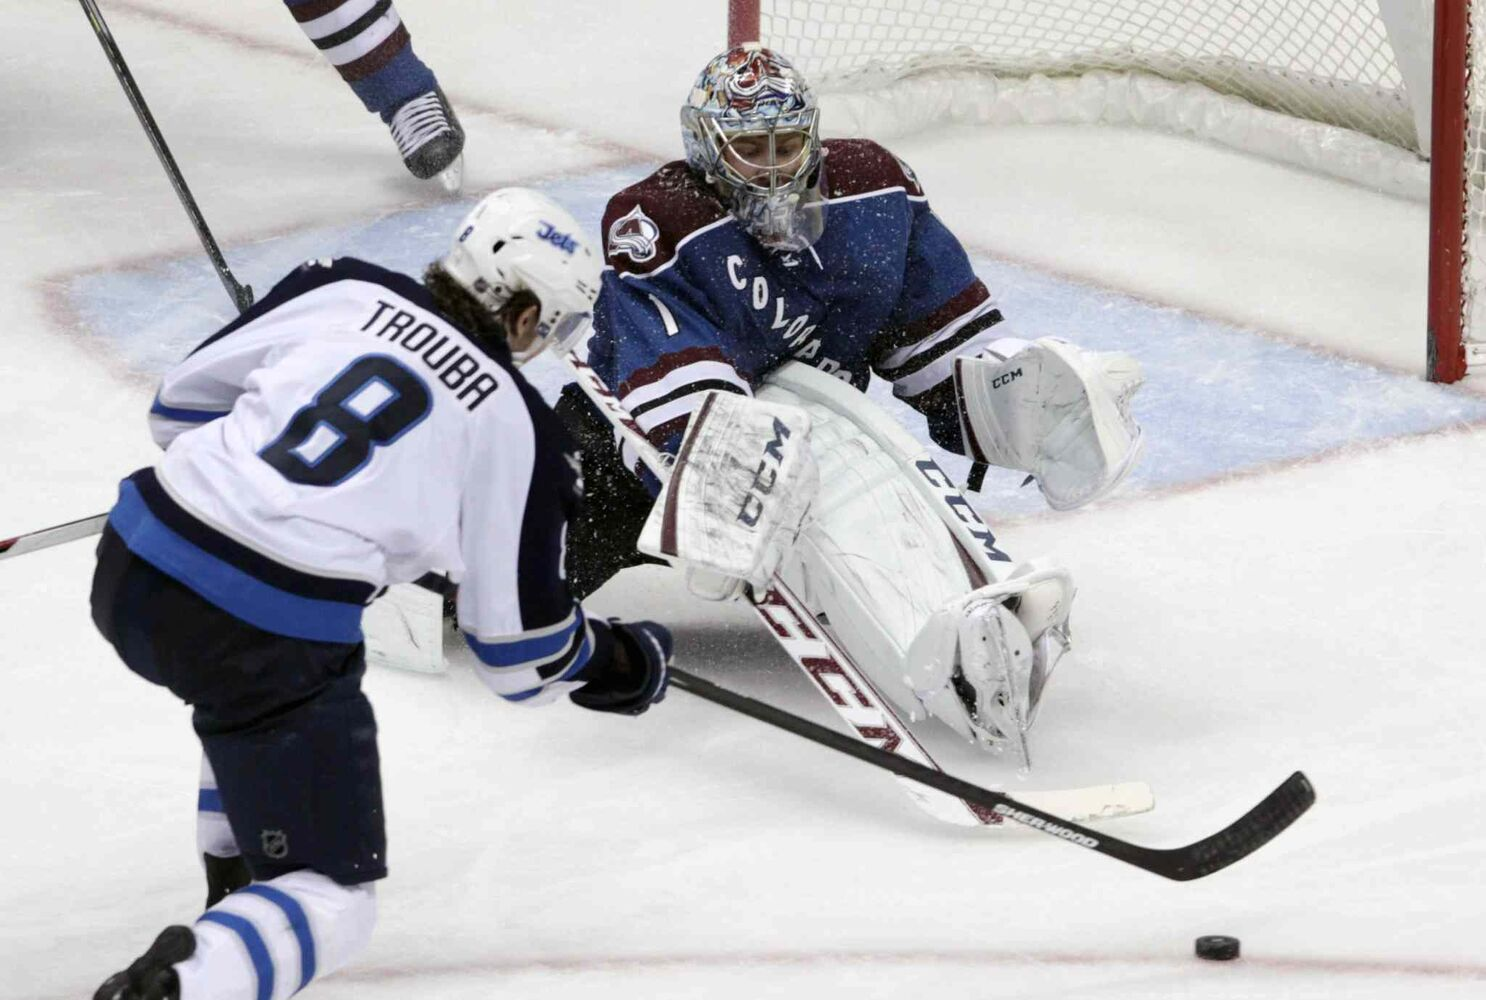 Colorado Avalanche goalie Semyon Varlamov (right) sets up against Winnipeg Jets defenceman Jacob Trouba during the third period.